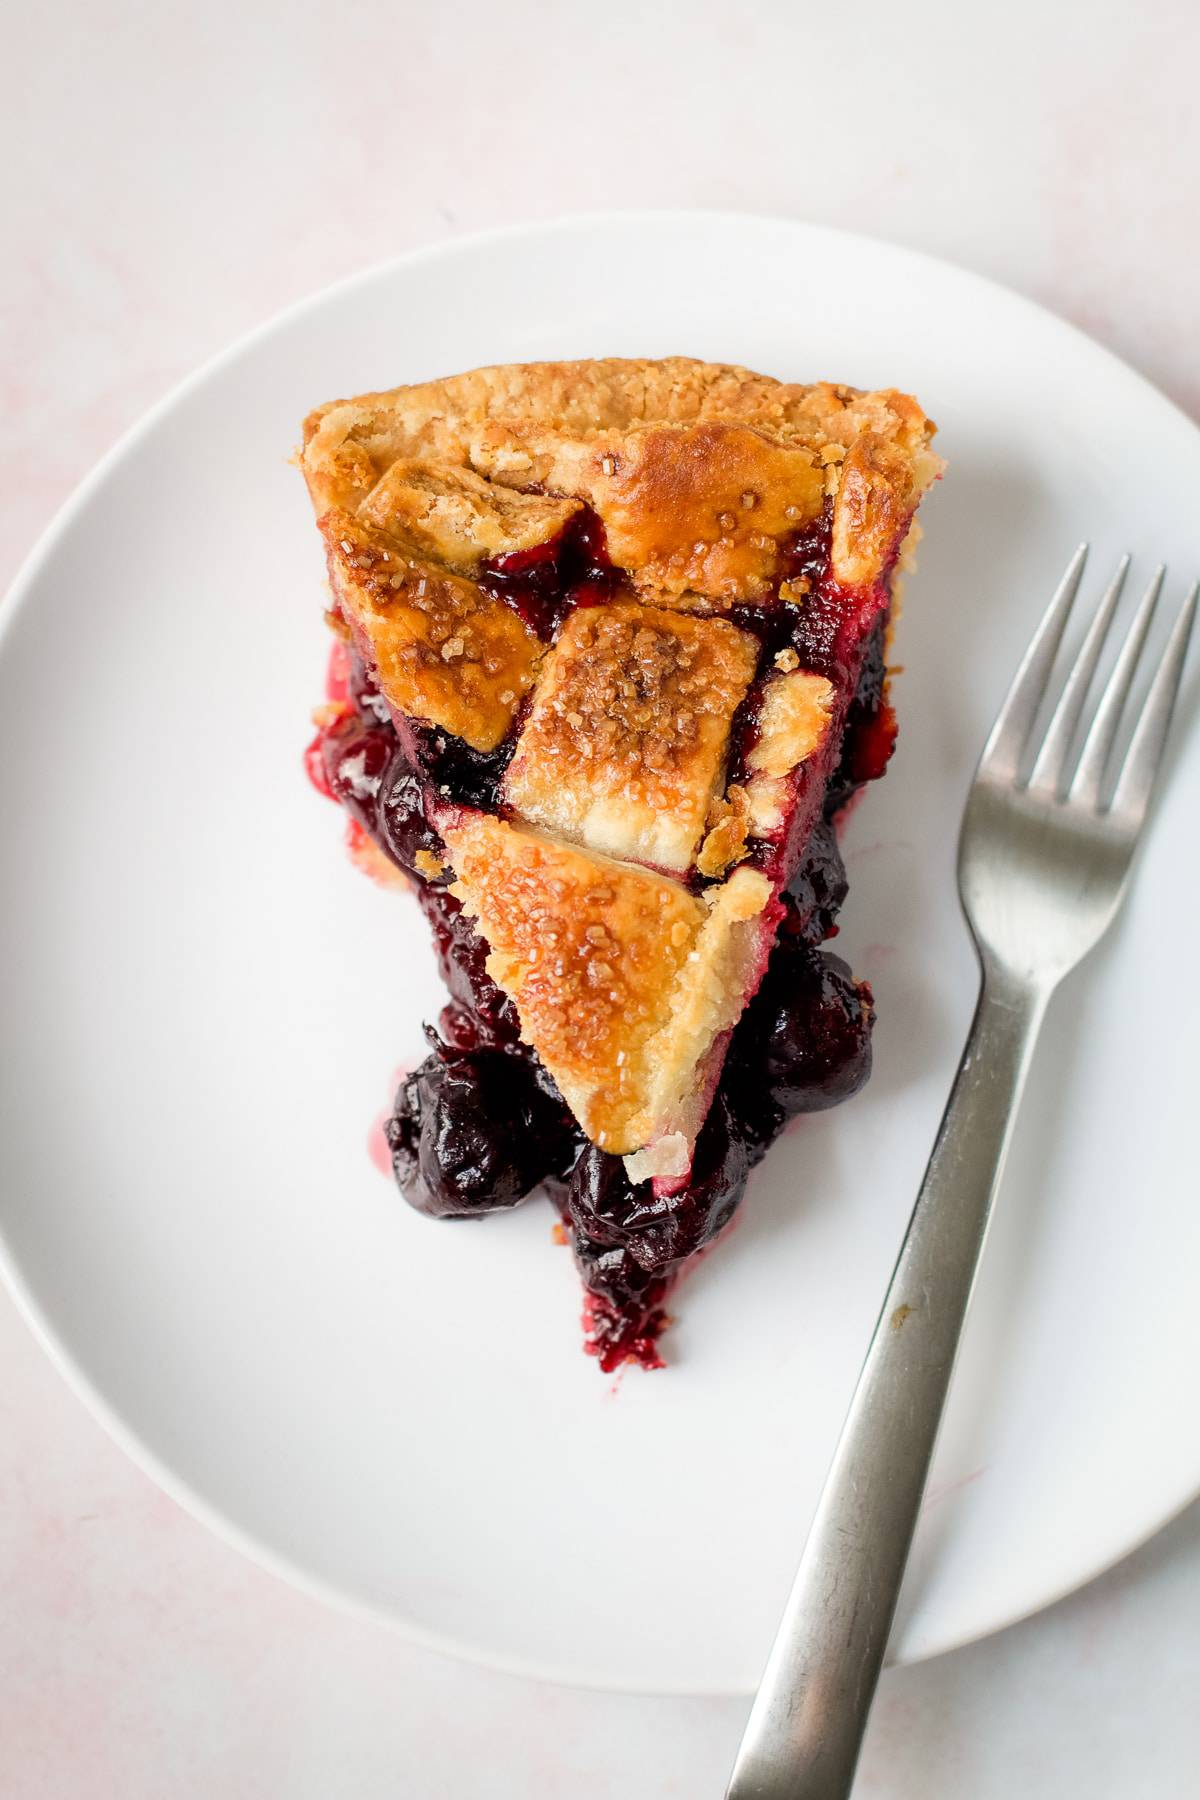 A slice of sweet cherry pie on a plate.